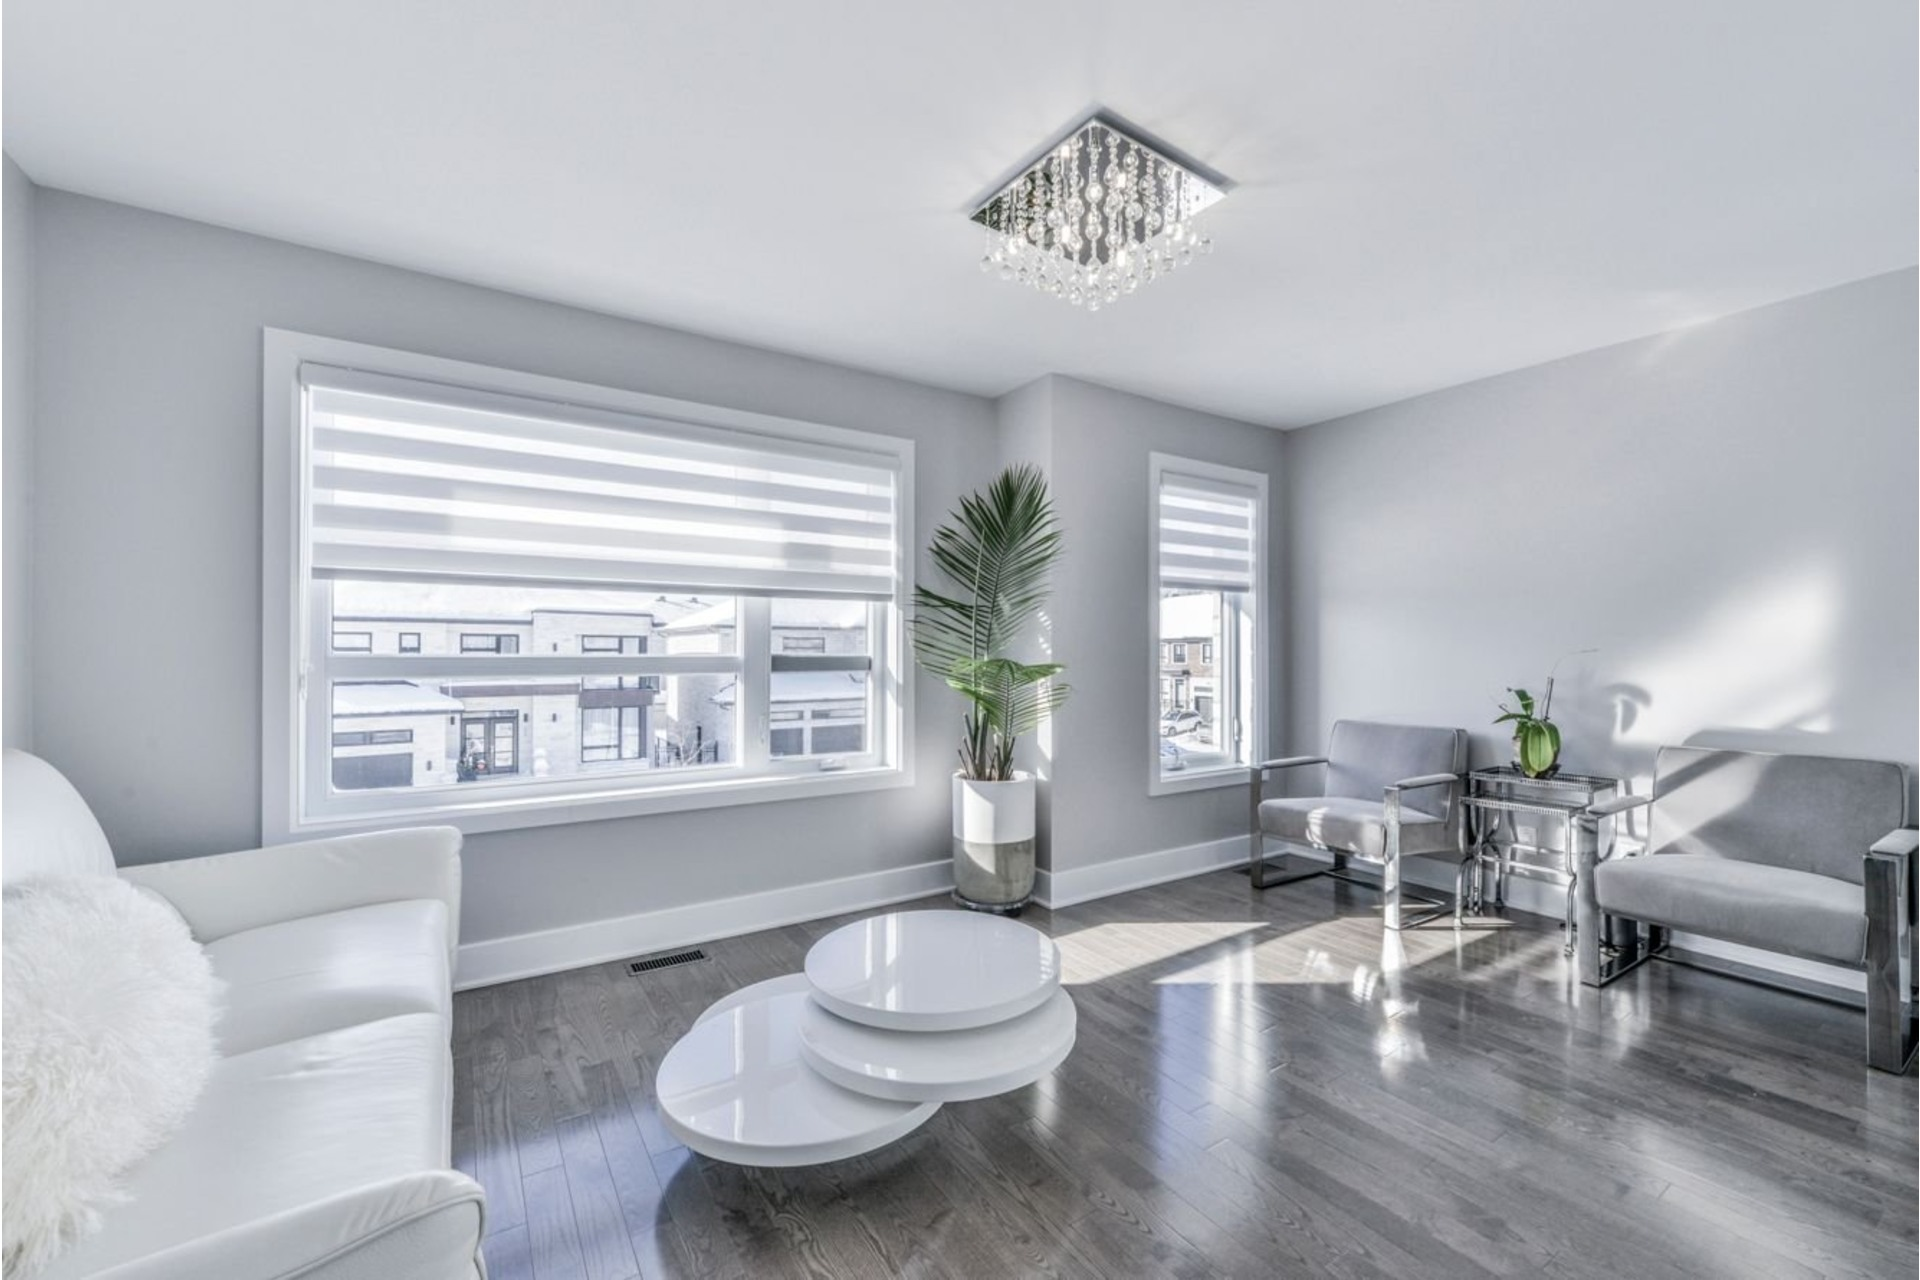 image 19 - House For sale Brossard - 7 rooms